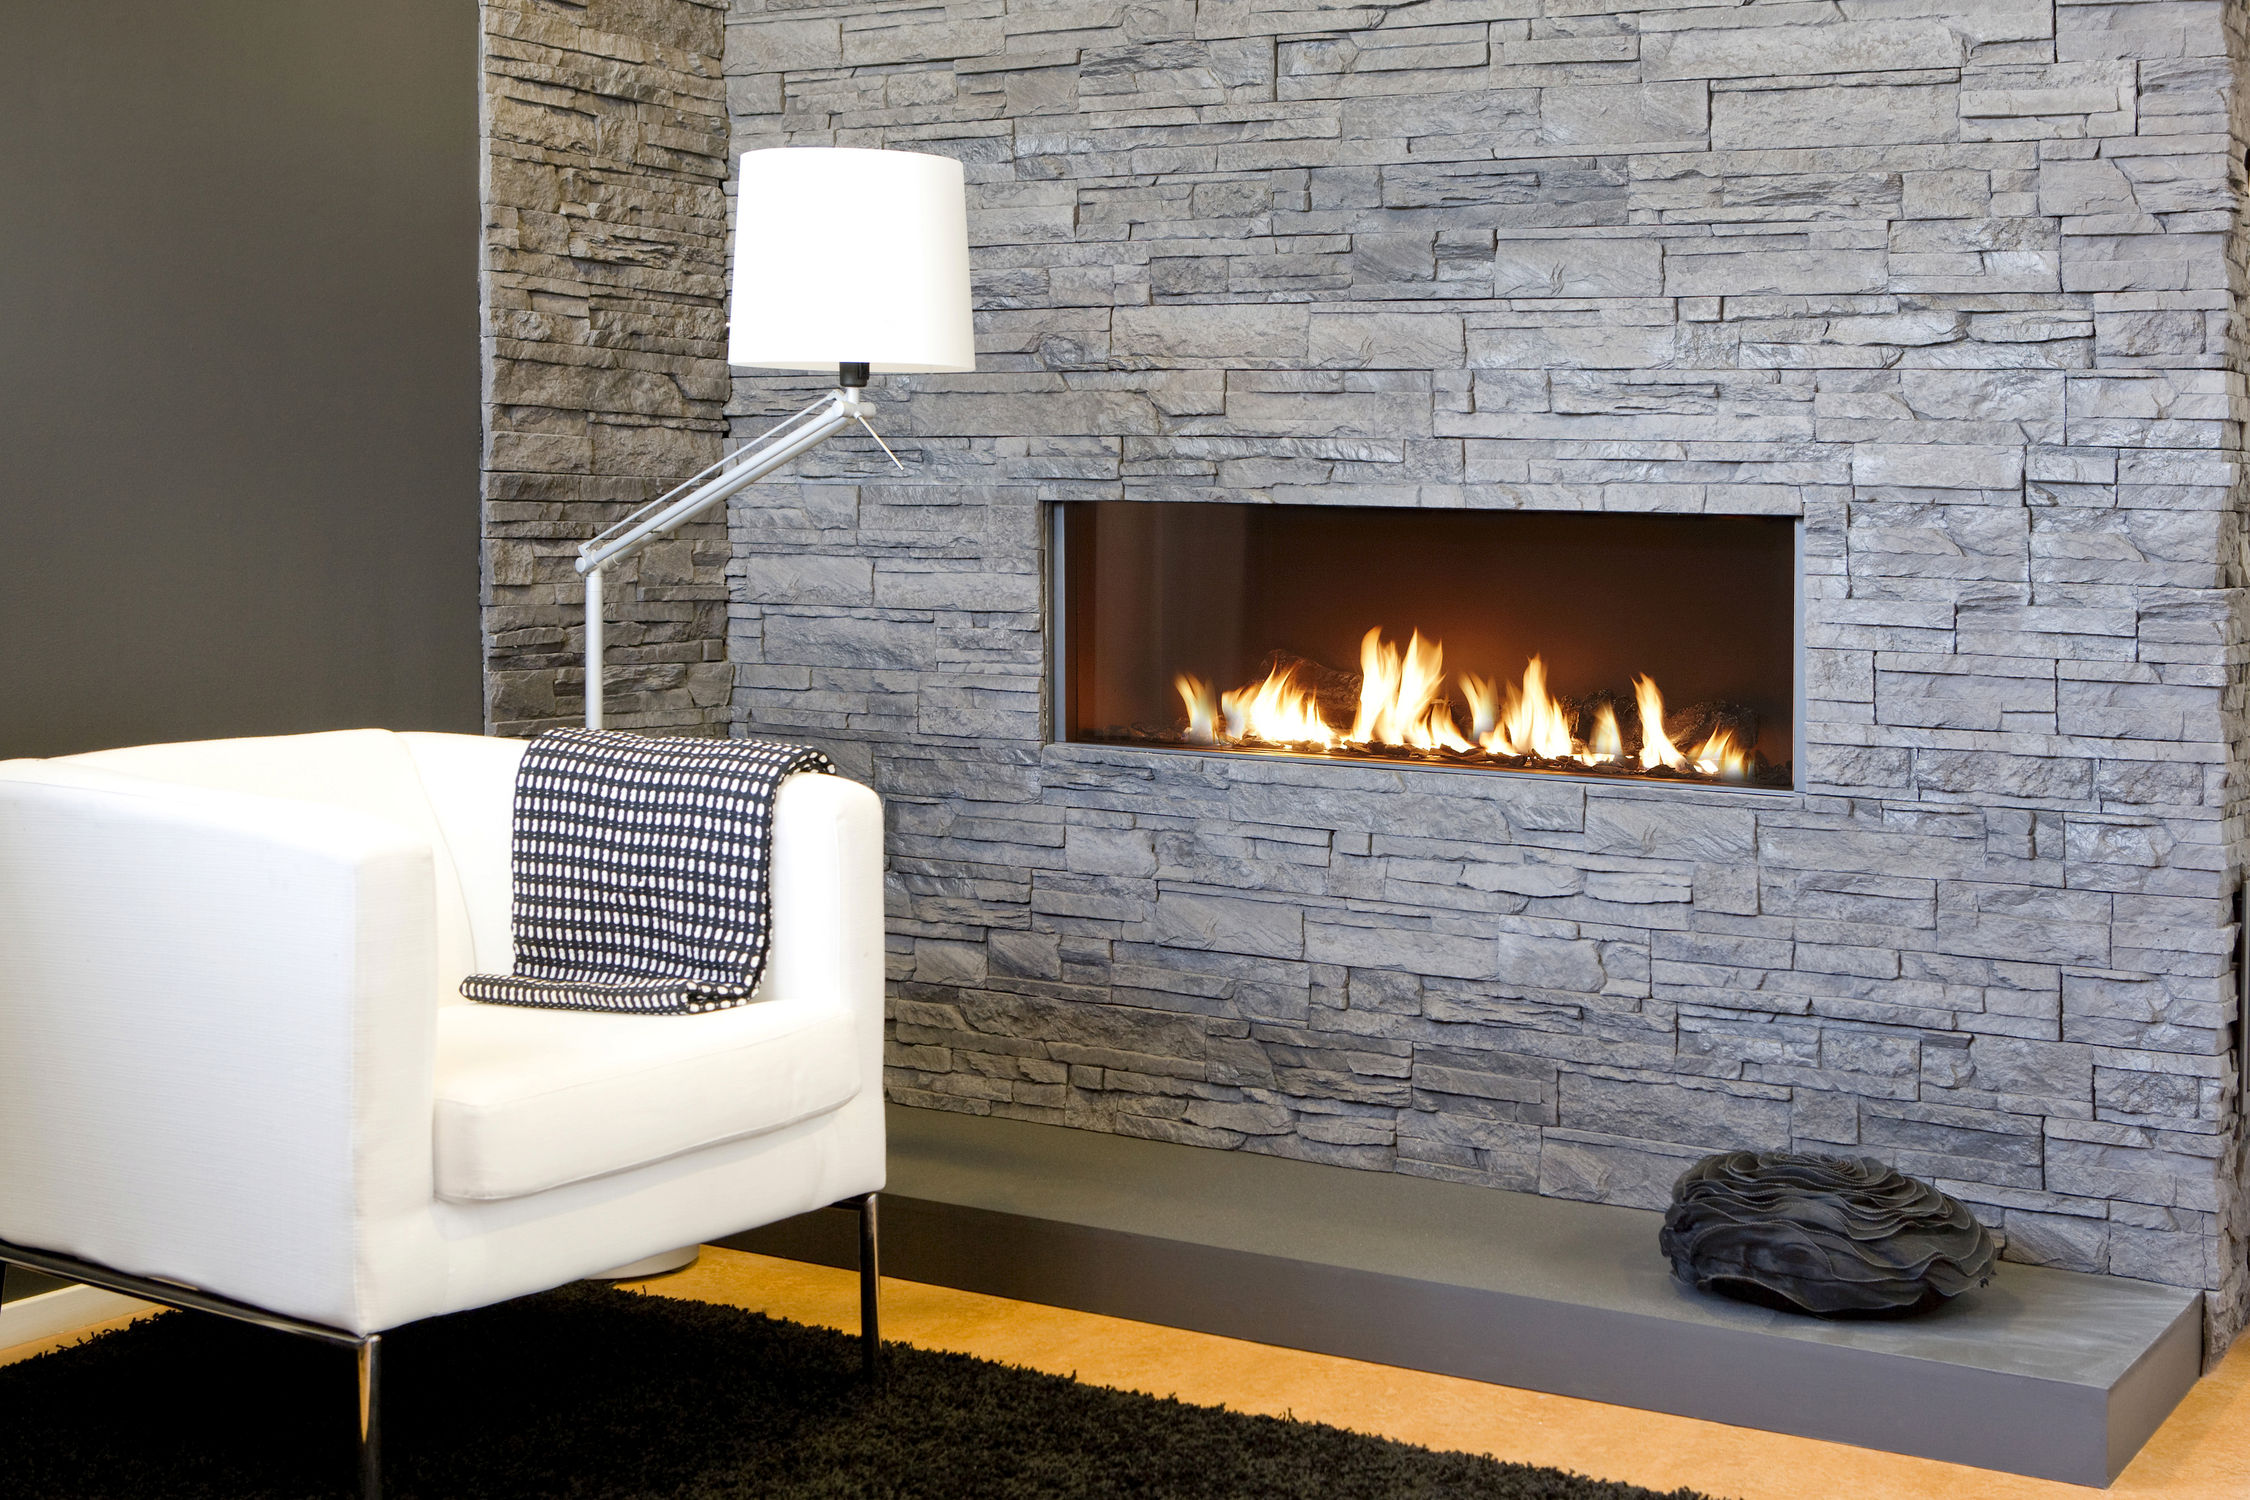 Built In Electric Fireplace For Your Home FIREPLACE DESIGN IDEAS